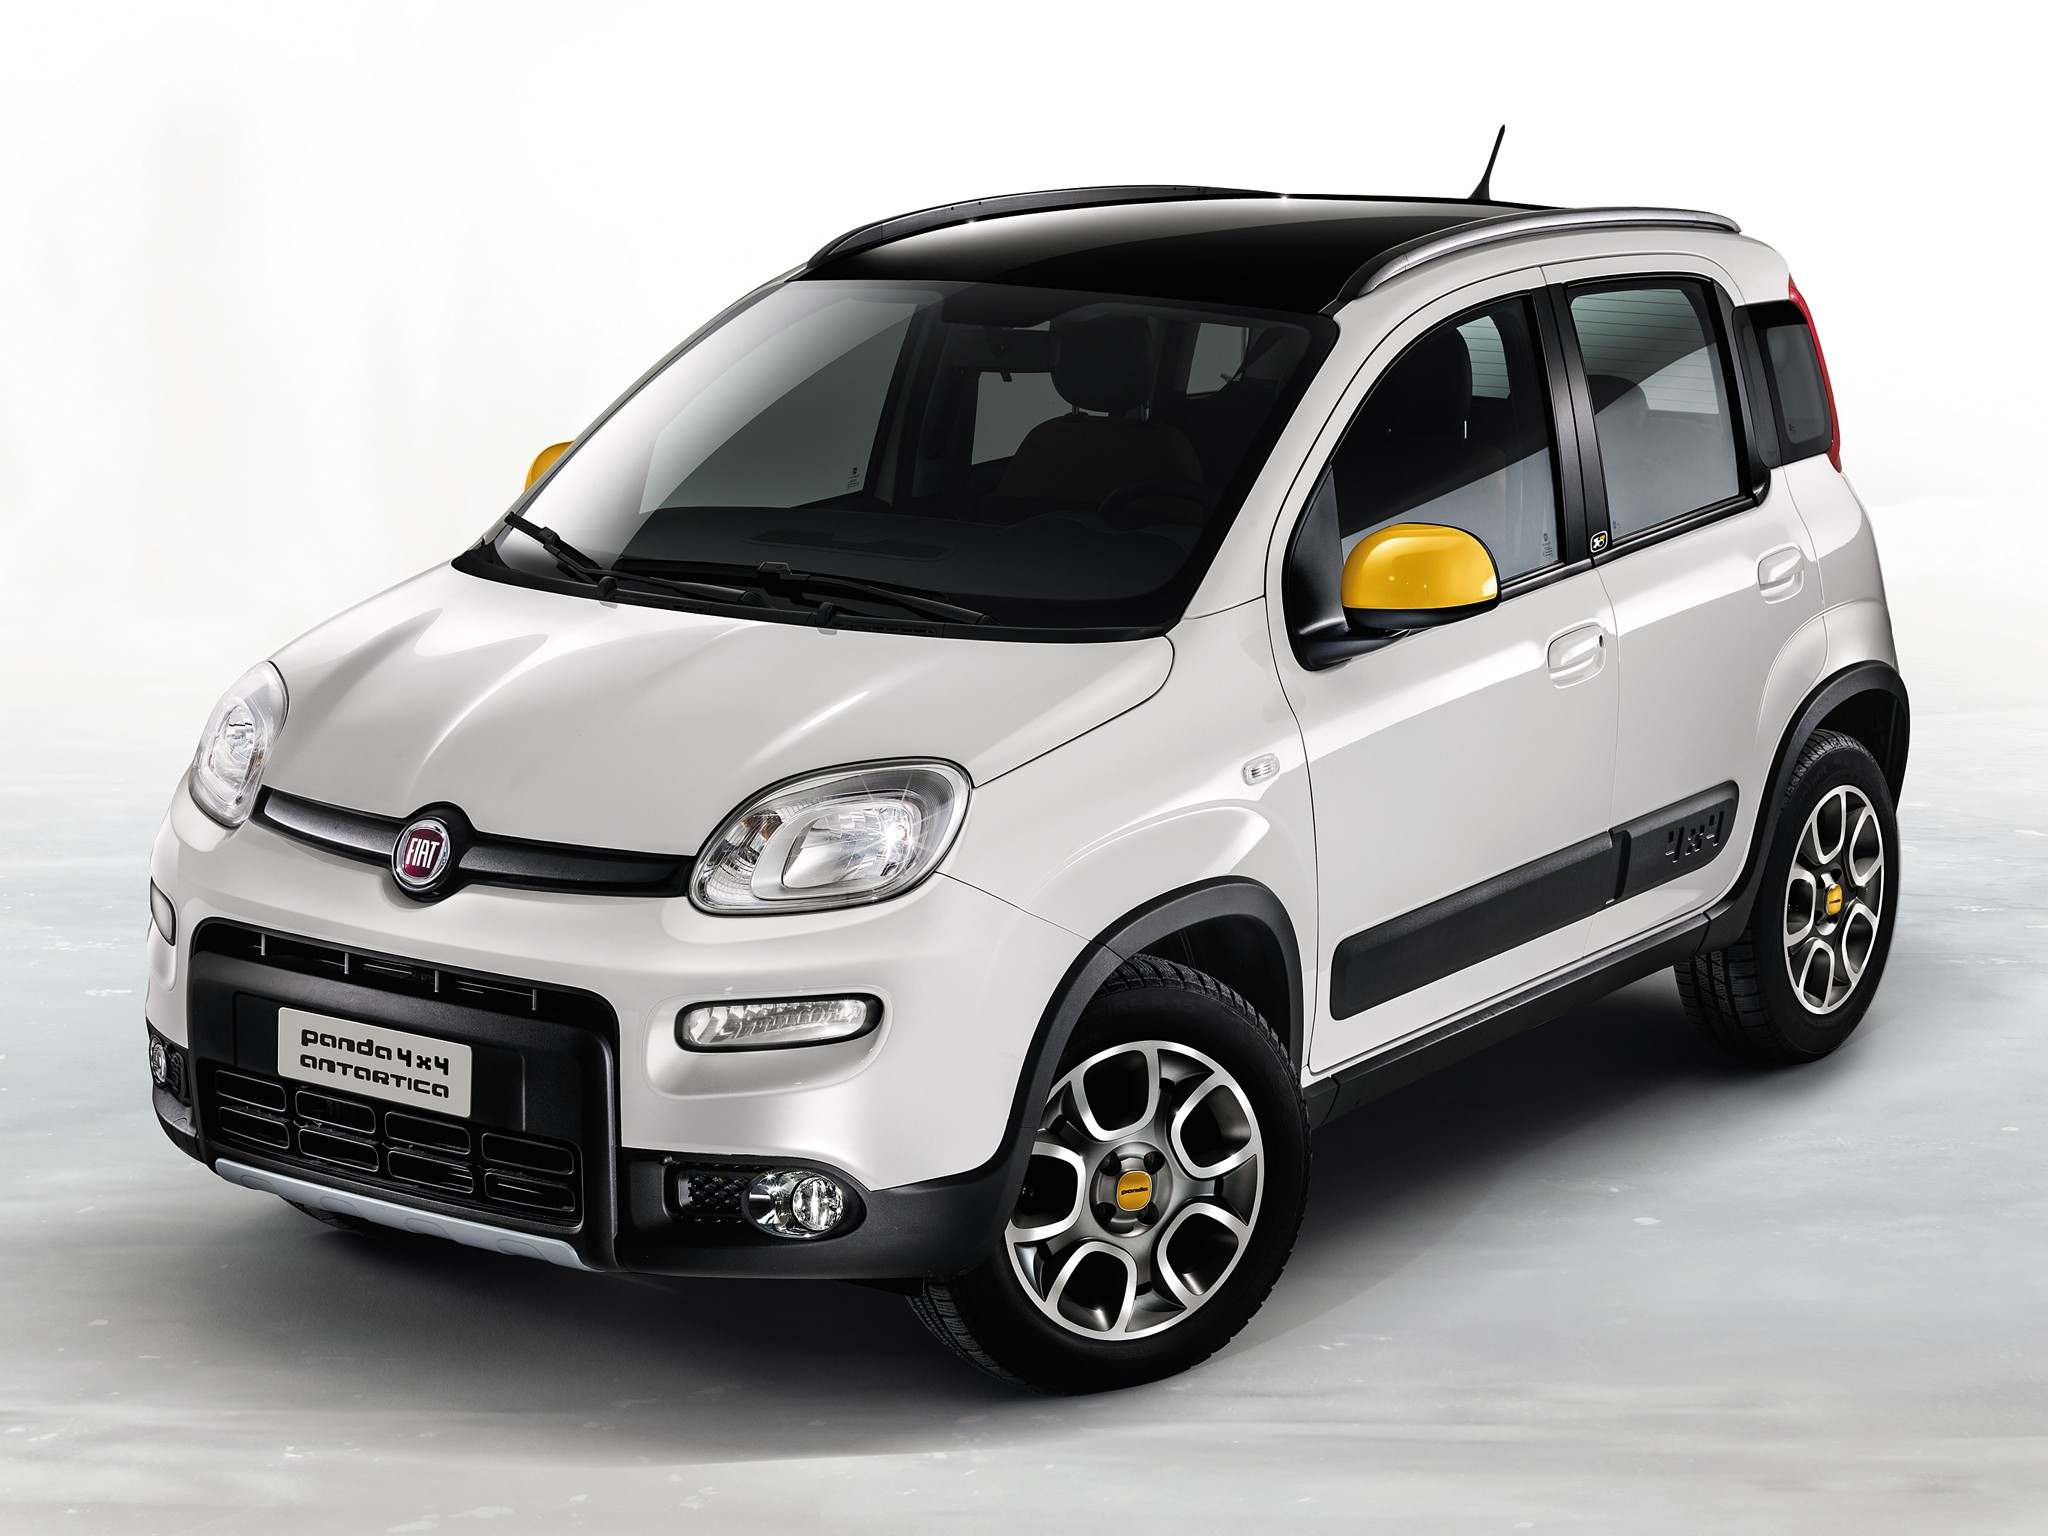 fiat panda 4x4 specs 2012 2013 2014 2015 2016 2017 2018 autoevolution. Black Bedroom Furniture Sets. Home Design Ideas